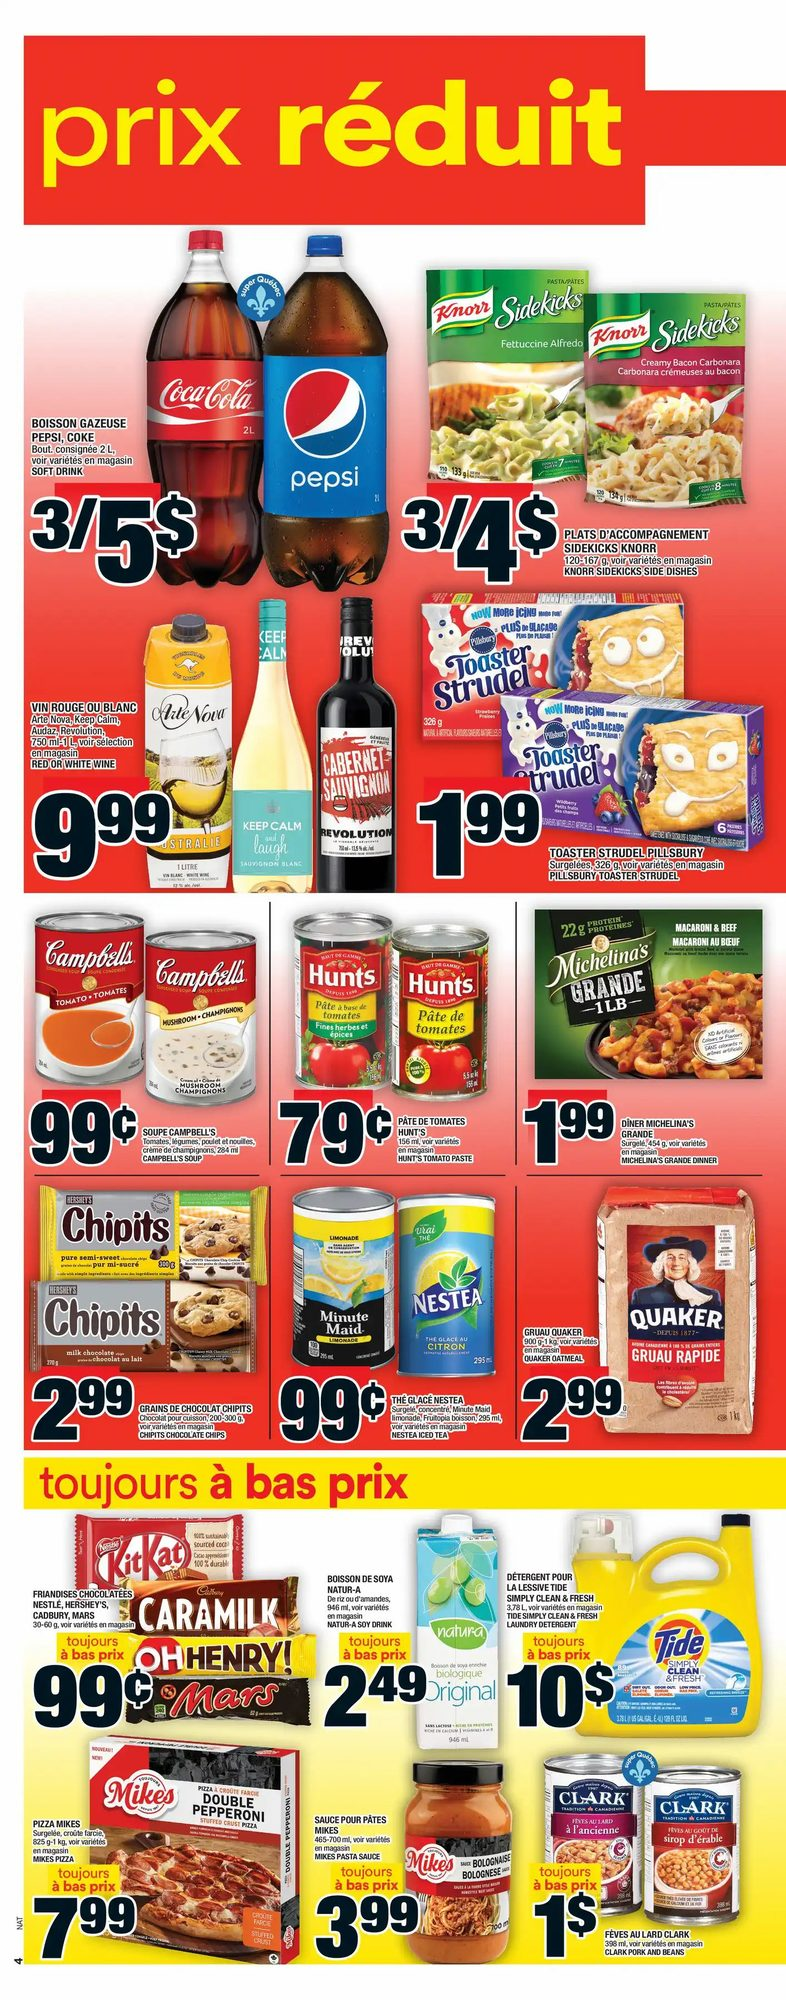 Super C - Weekly Flyer Specials - Page 7